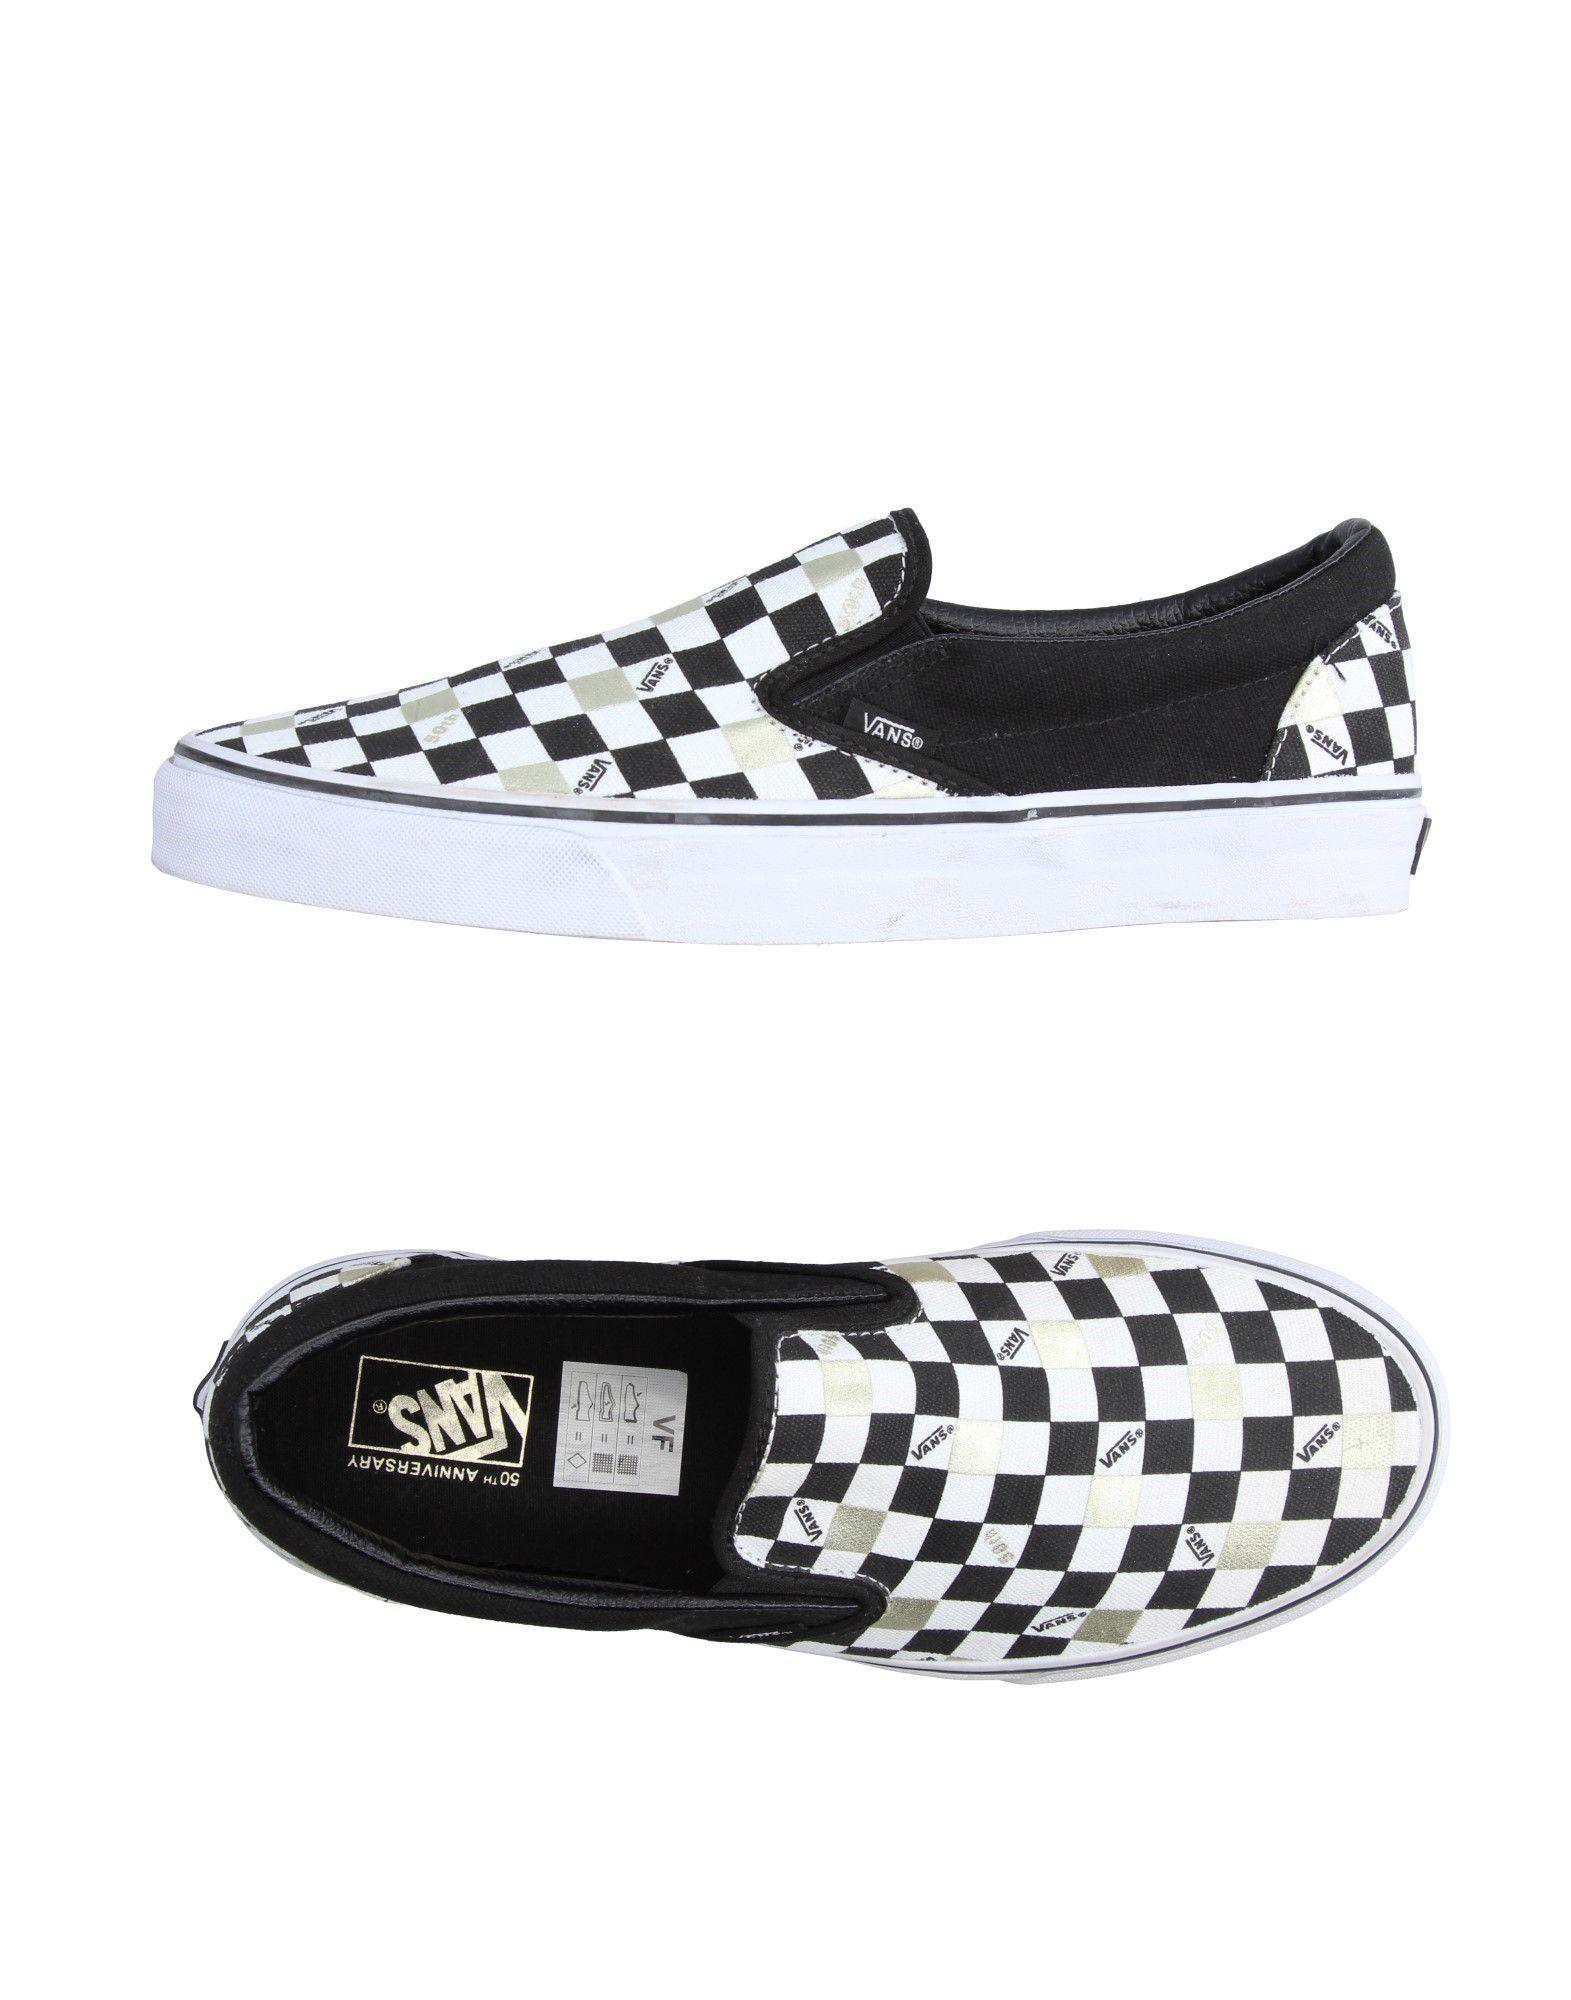 Find Men's Low Top Shoes at coolmfilehj.cf Enjoy free shipping and returns with NikePlus.